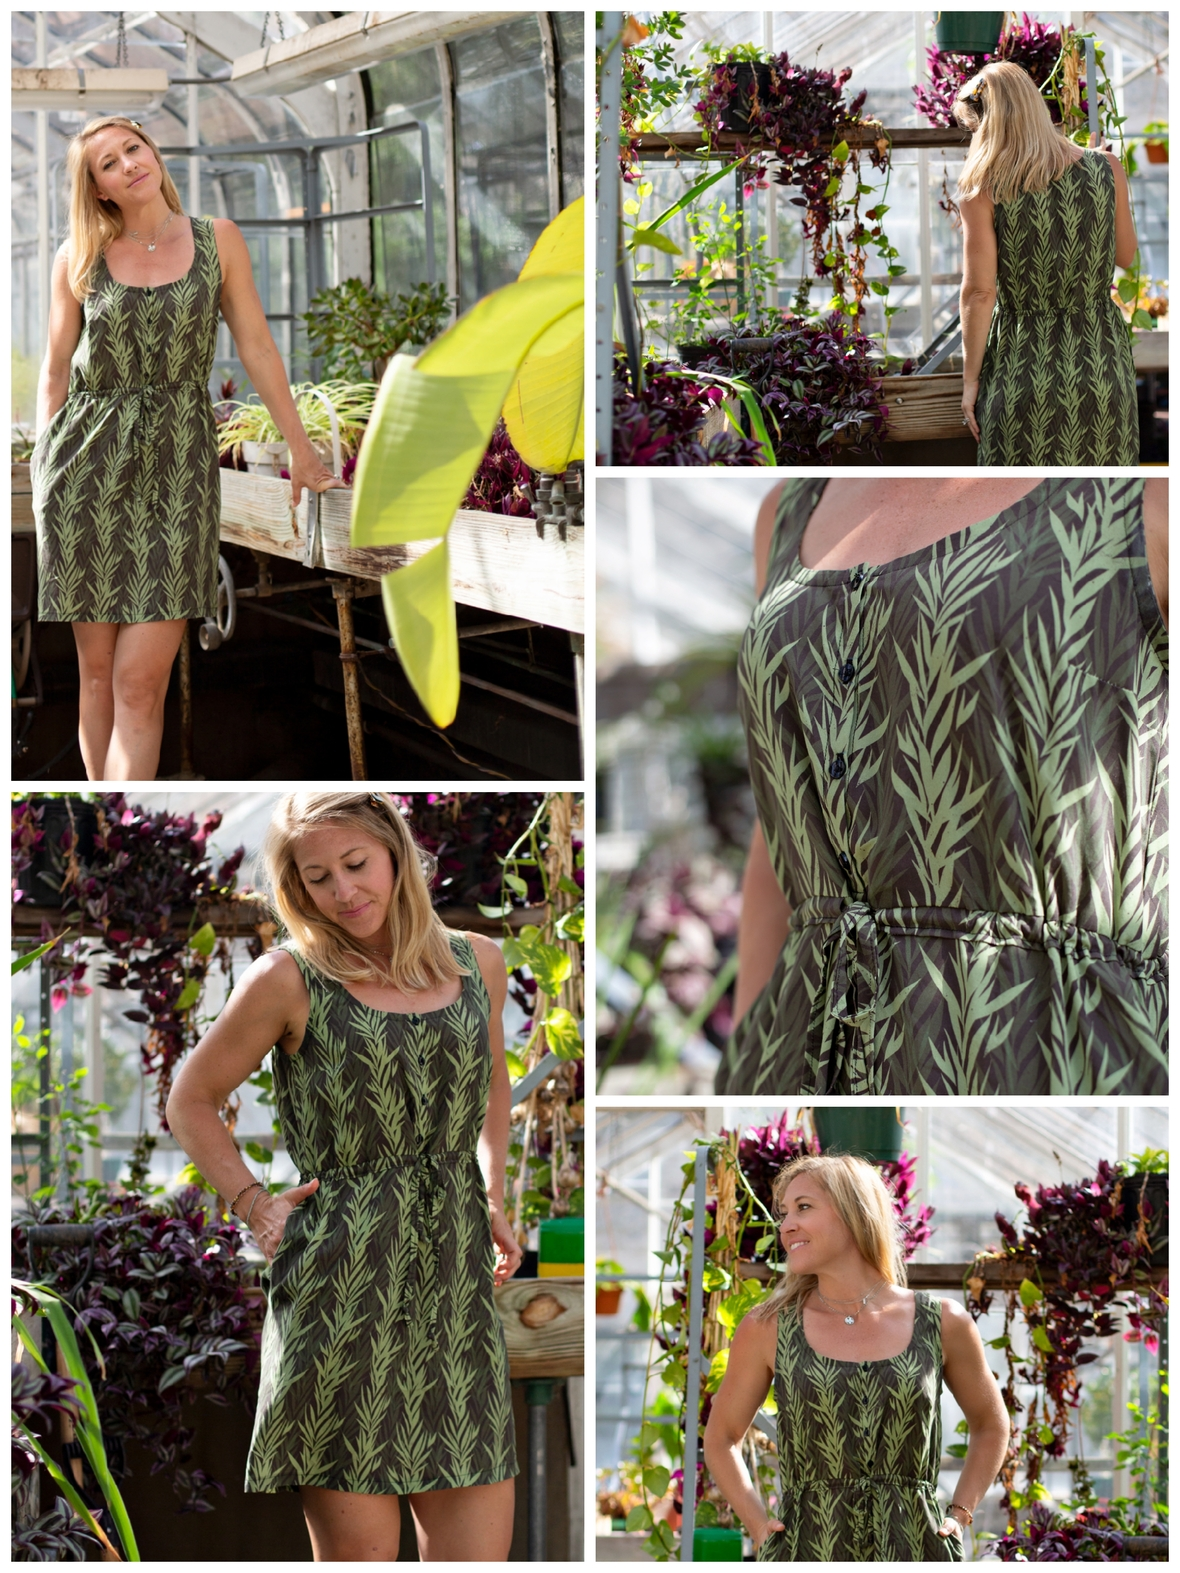 Baja Sur Fabric Hey Miss Designs and Hawthorne Supply Co Rayon Dress